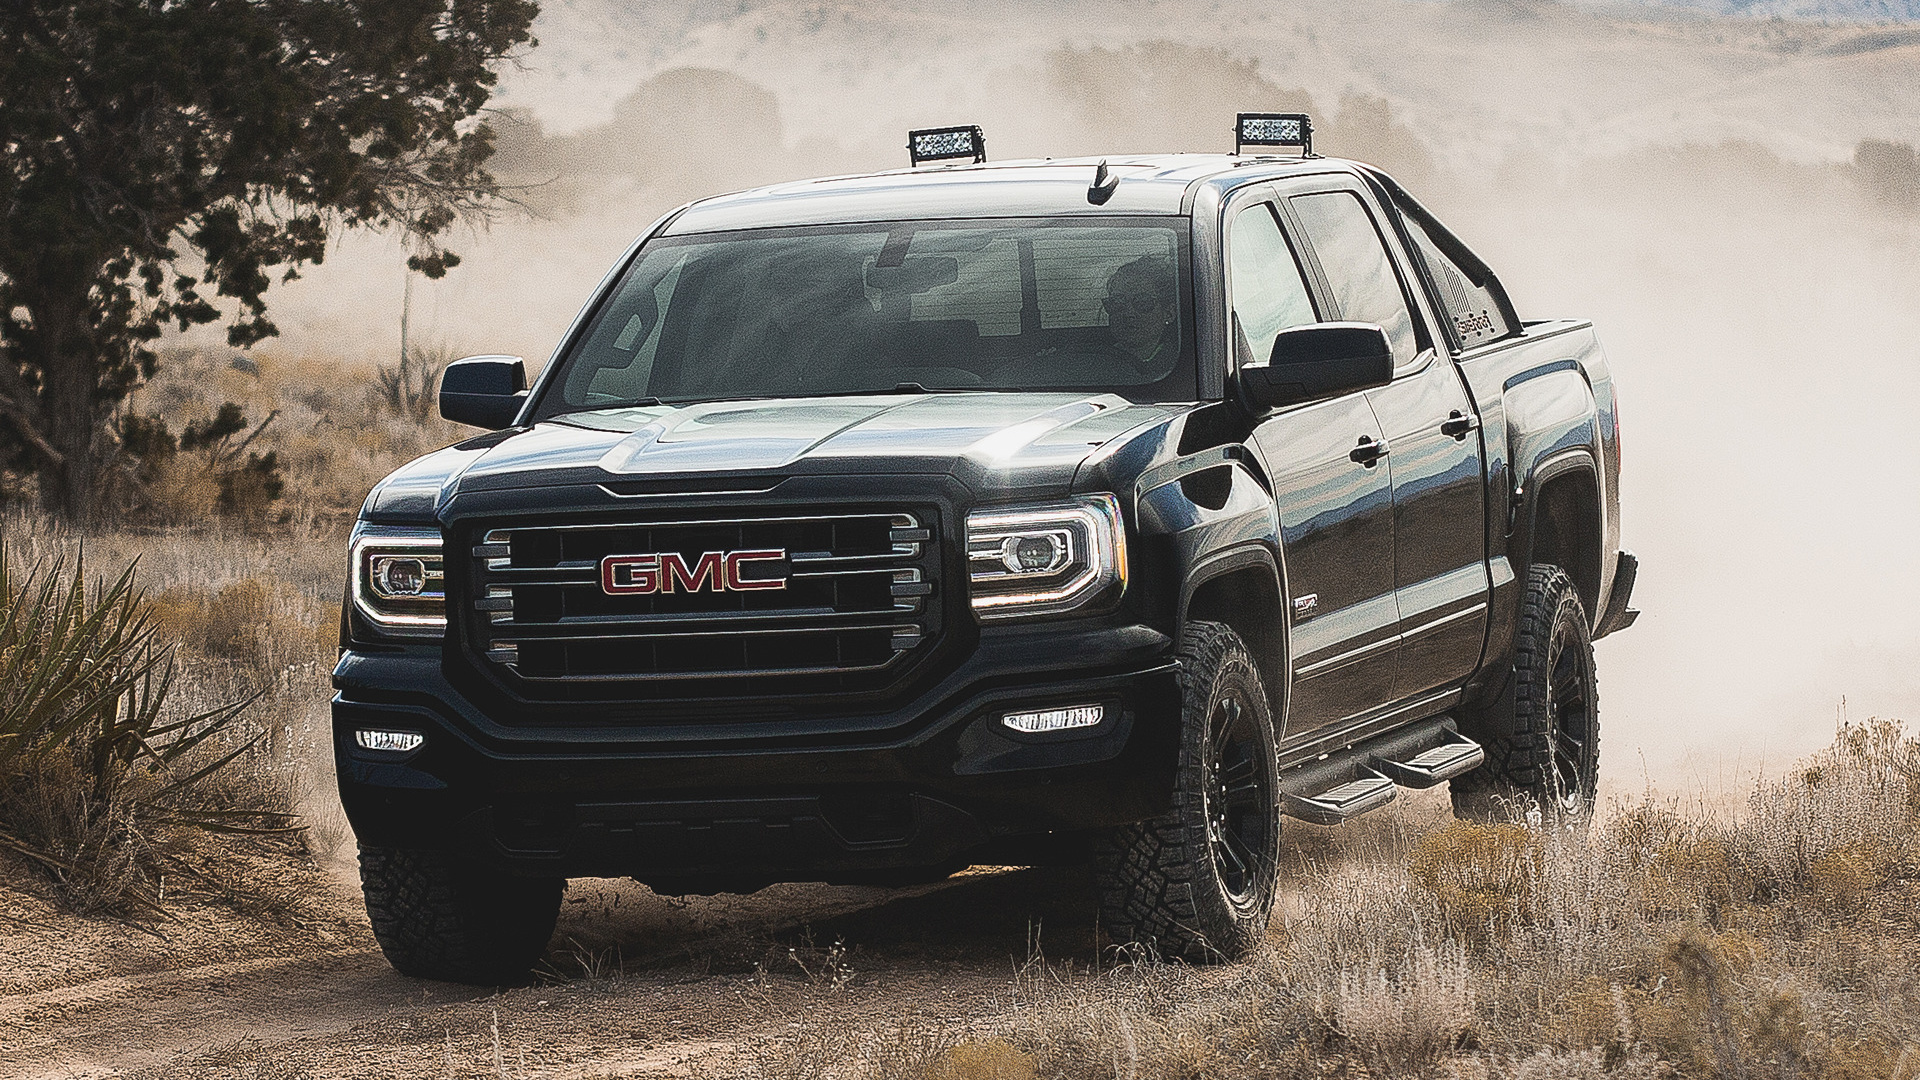 Gmc Elevation 2017 >> GMC Sierra 1500 All Terrain X Crew Cab (2016) Wallpapers and HD Images - Car Pixel